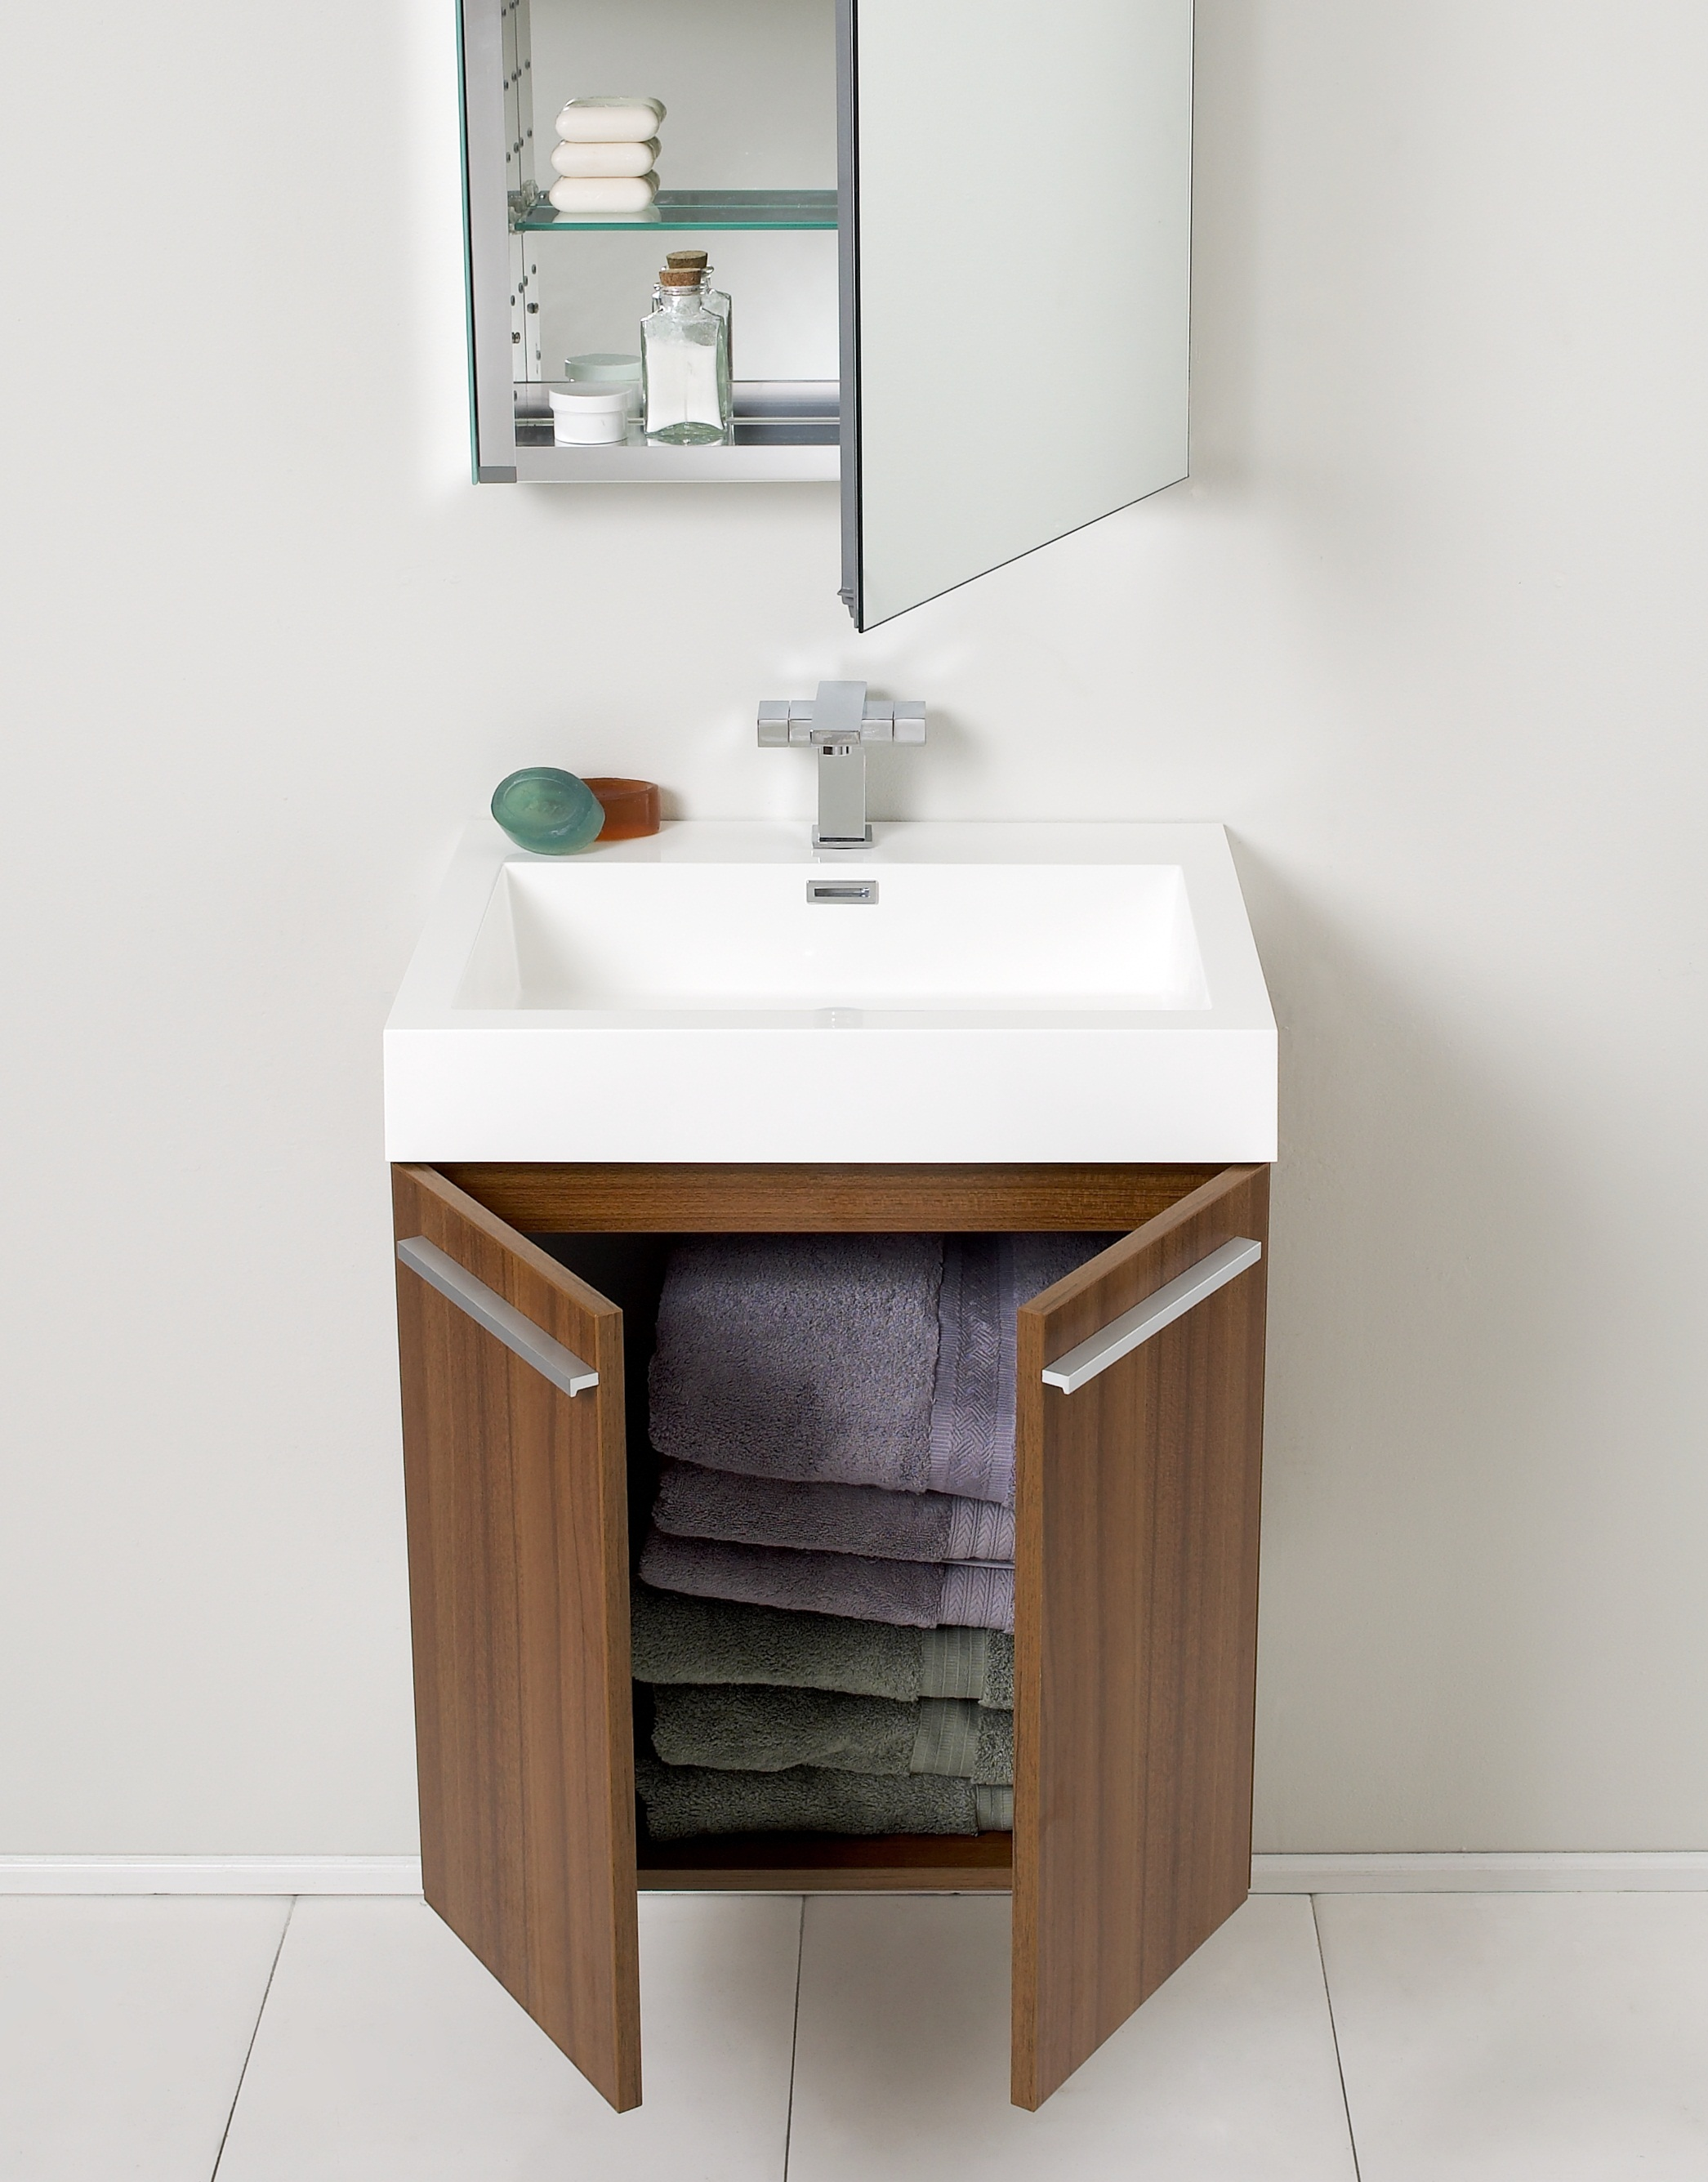 bathroom vanities  buy bathroom vanity furniture  cabinets  rgm  - take your bathroom